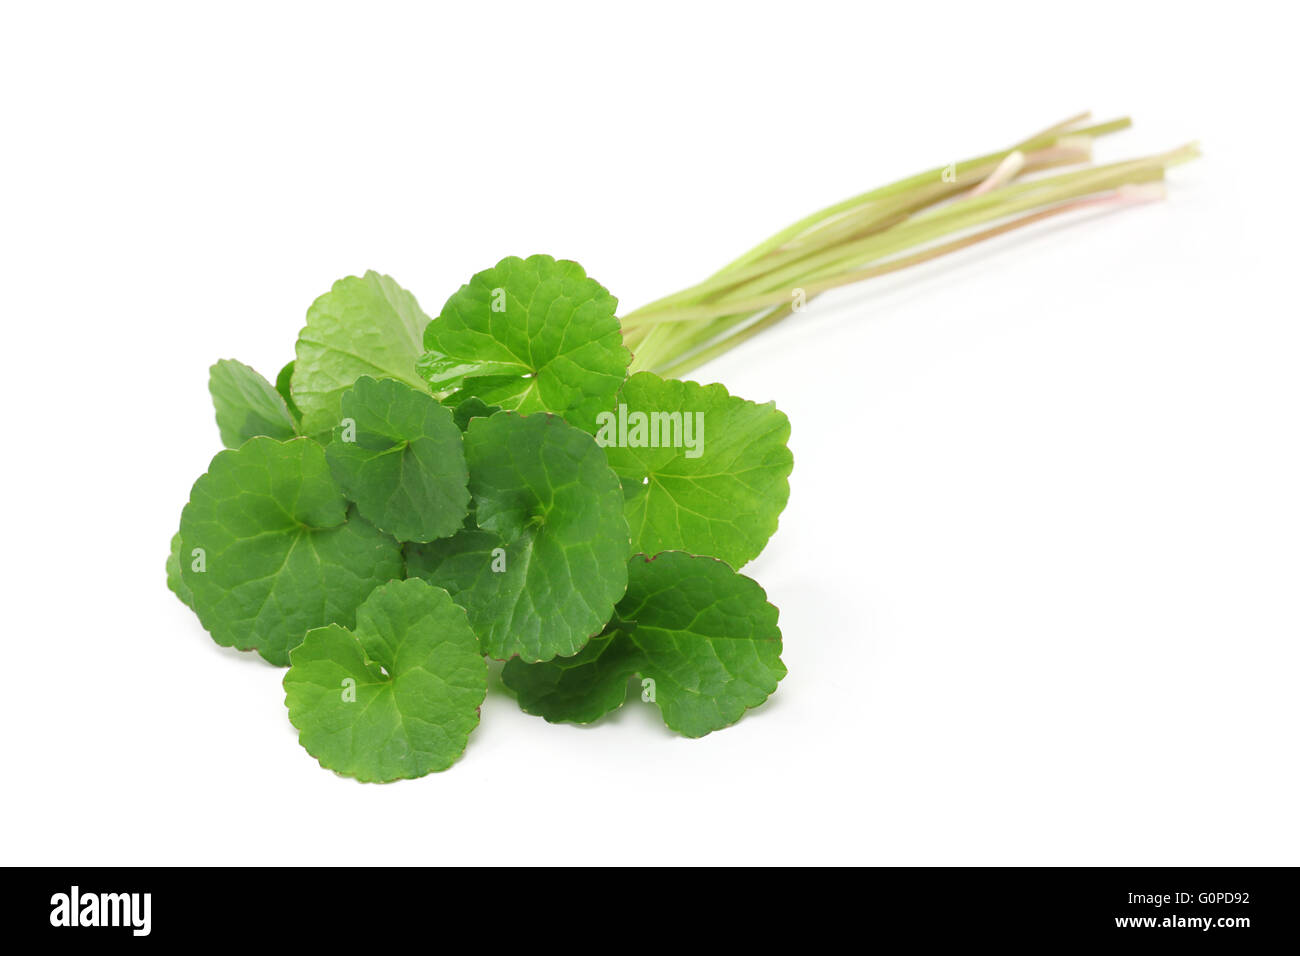 gotu kola, asiatic pennywort, centella asiatica, ayurveda herbal medicine - Stock Image